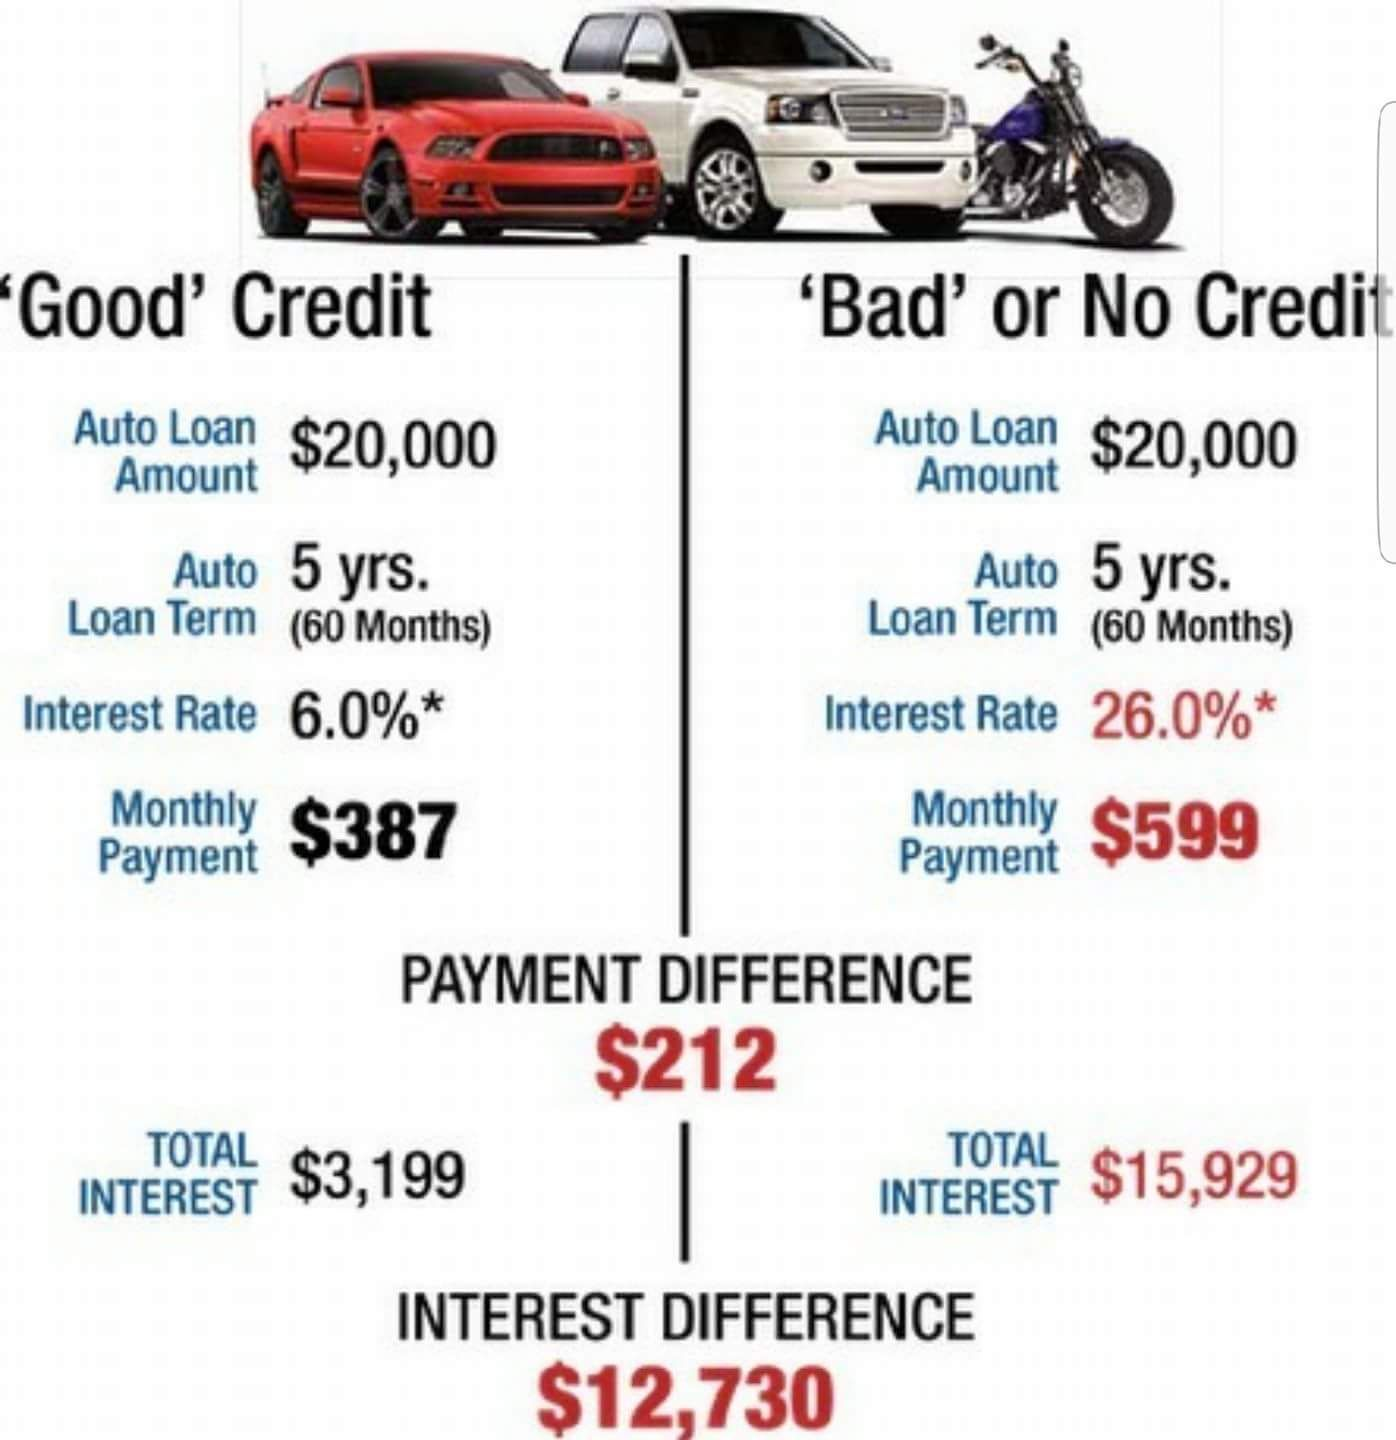 Bad credit is expensive learn how to it with